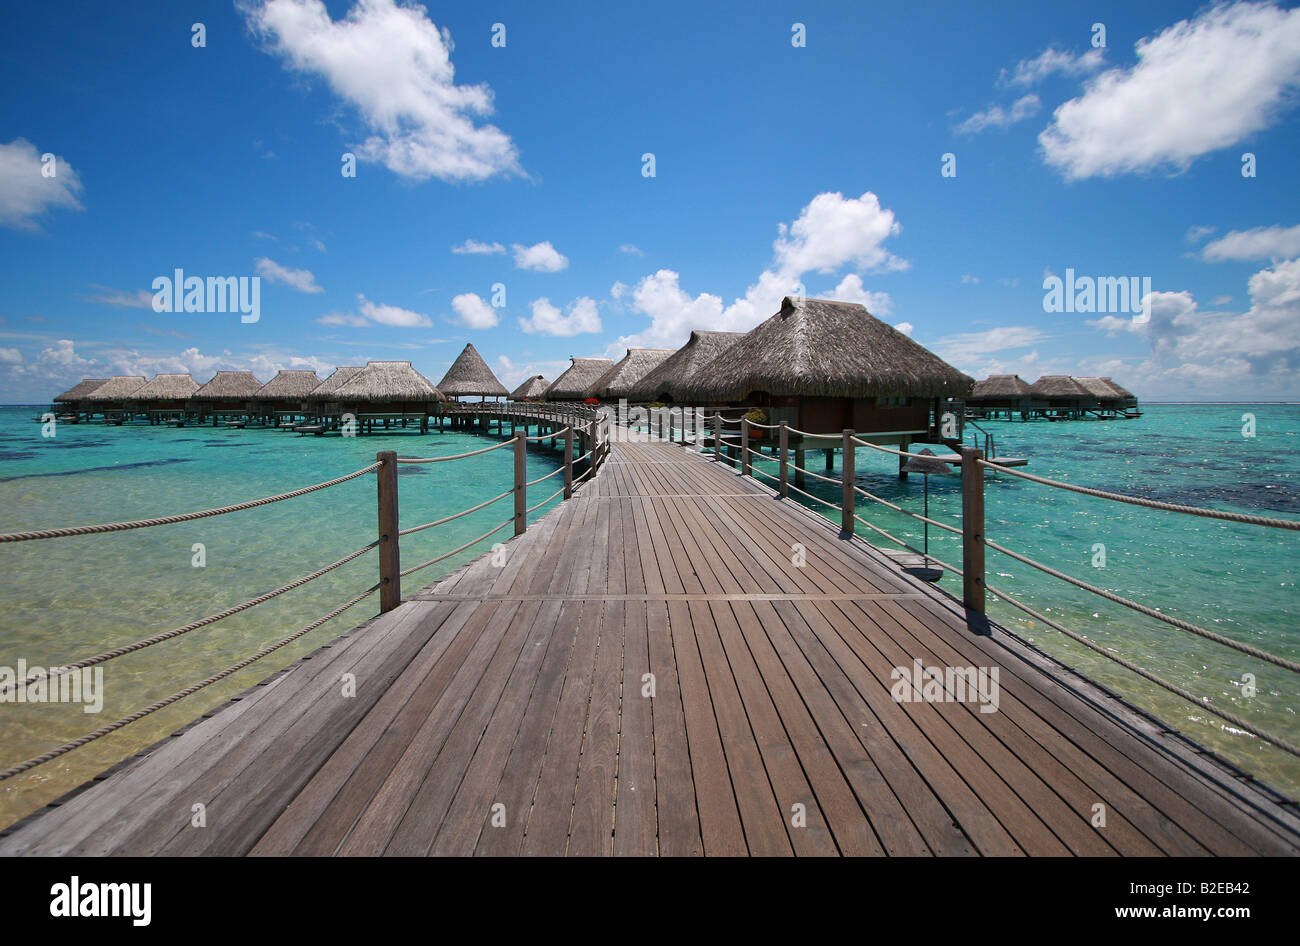 Shacks in shallow water, Manihi, Tuamotu Archipelago, French Polynesia, Polynesia, Pacific Island - Stock Image